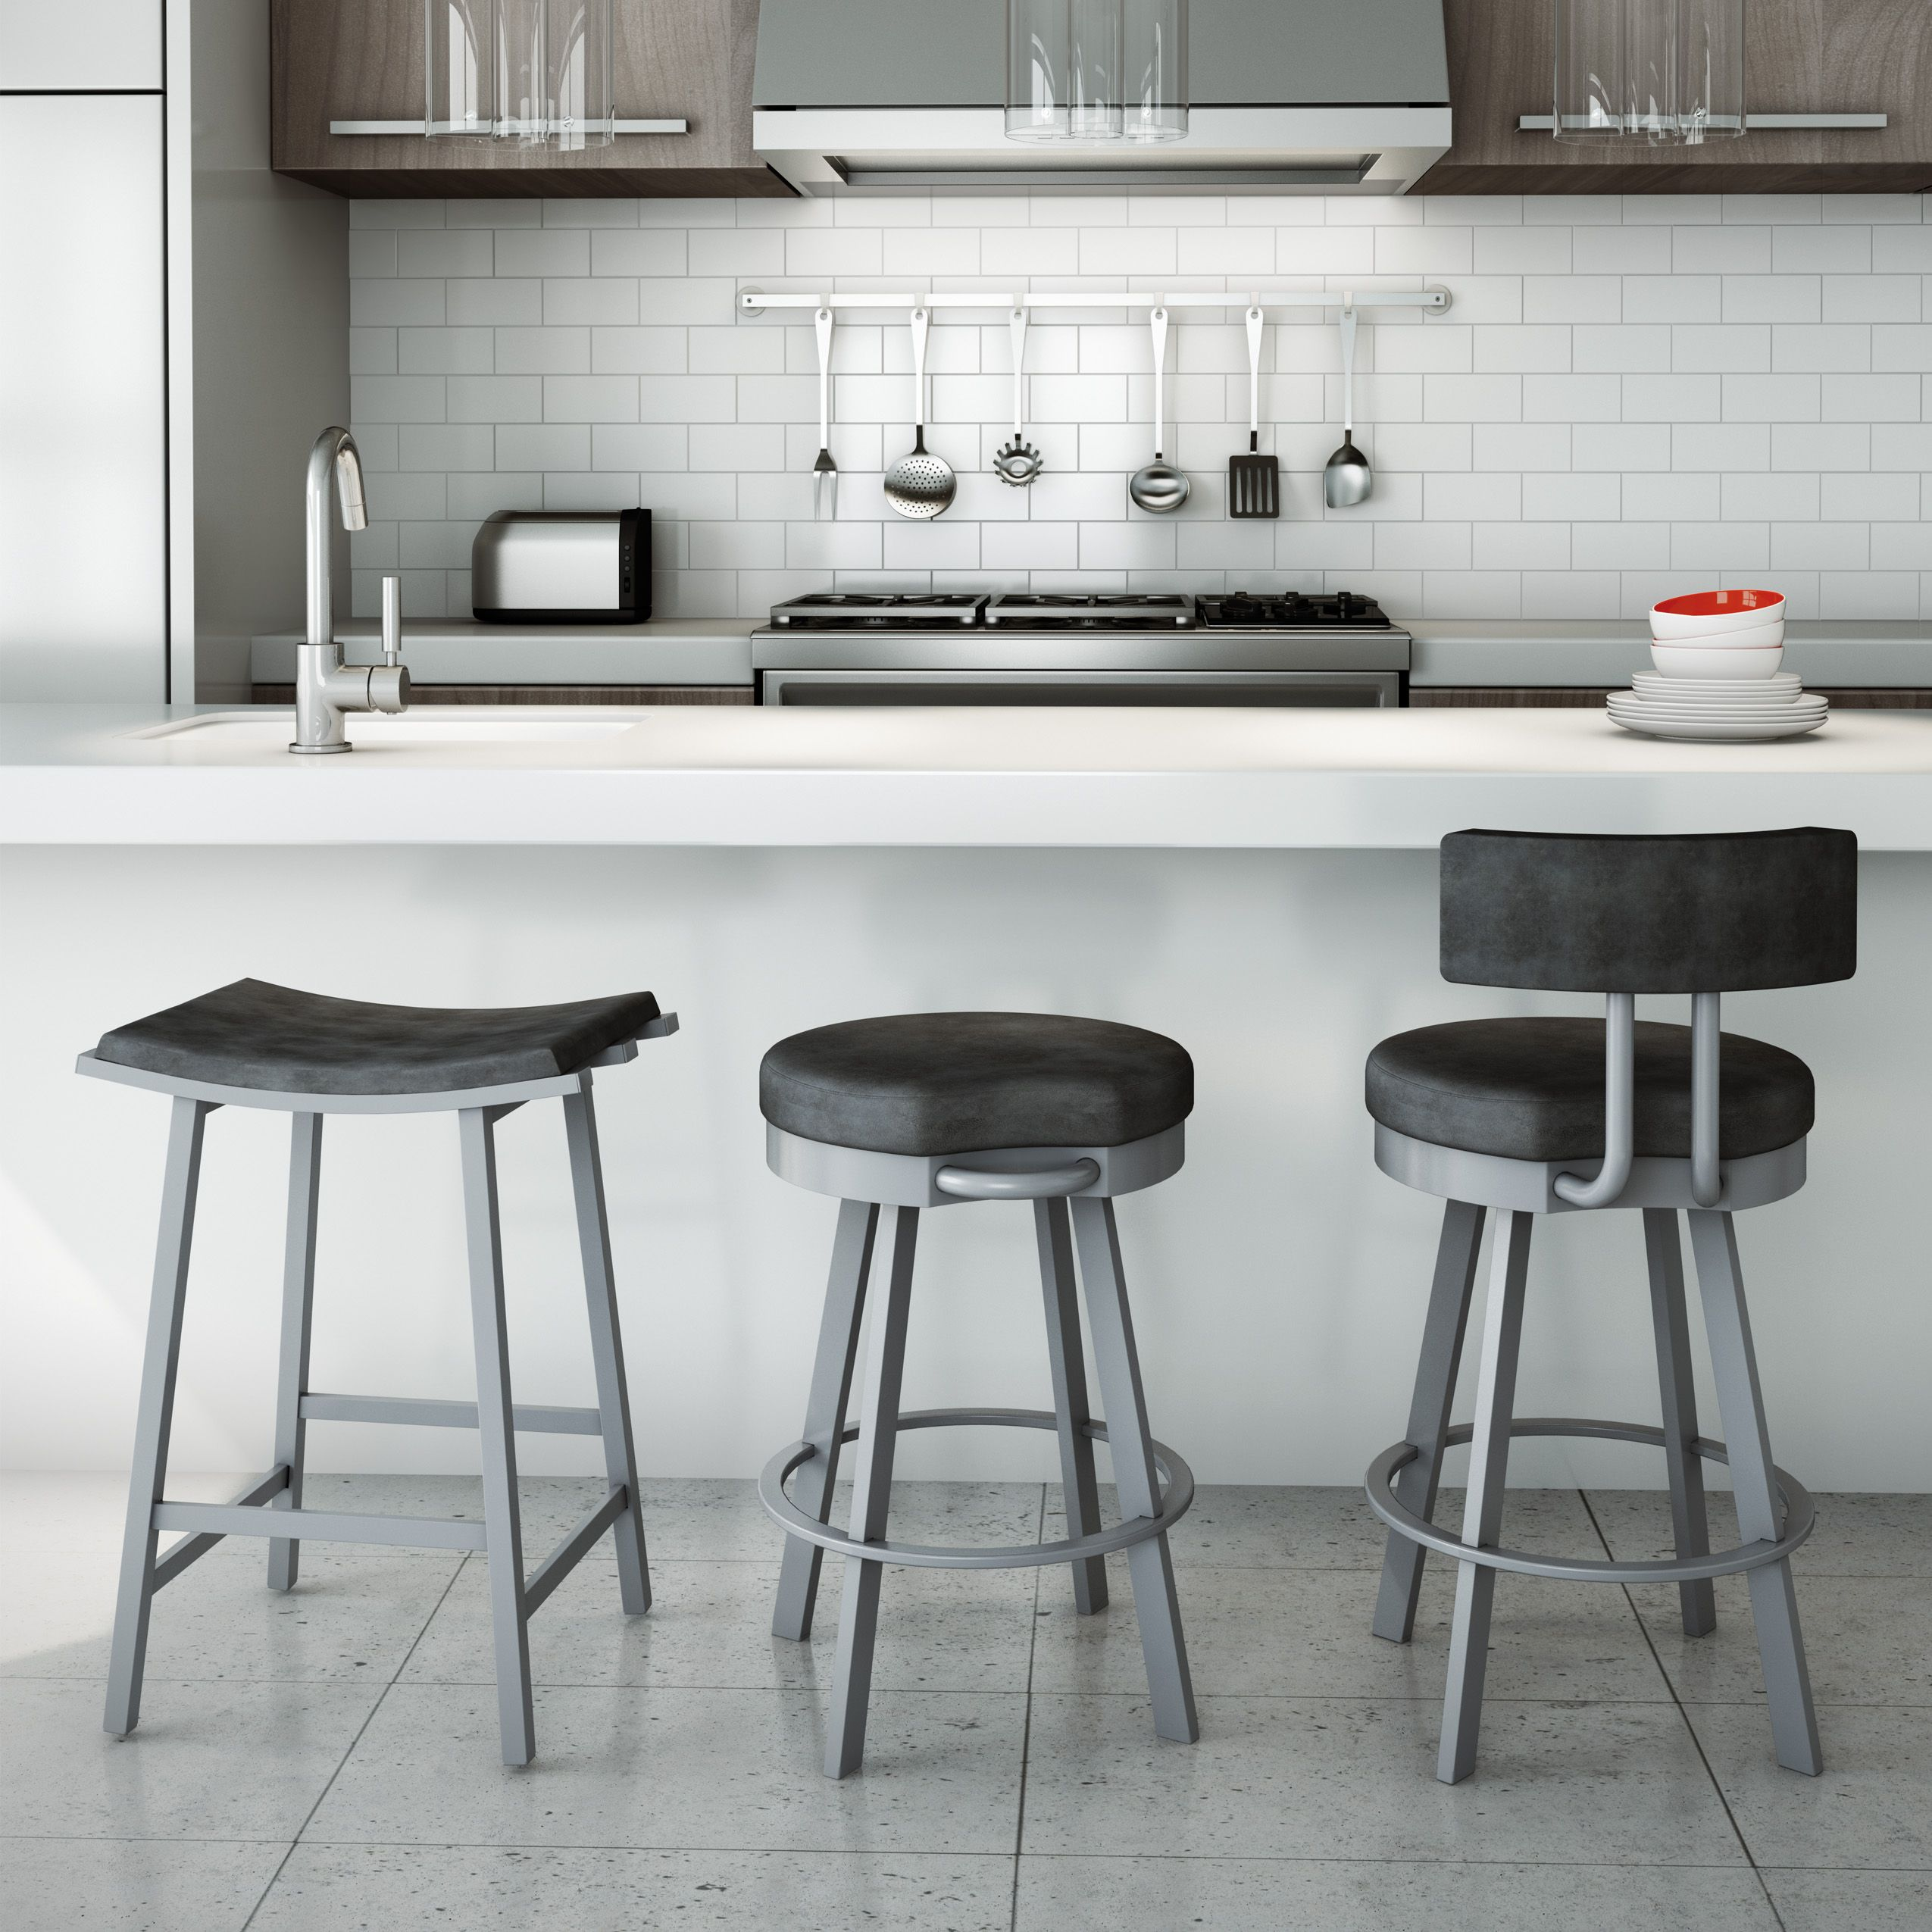 Amisco  Nathan Stool (40033)  Furniture  Kitchen